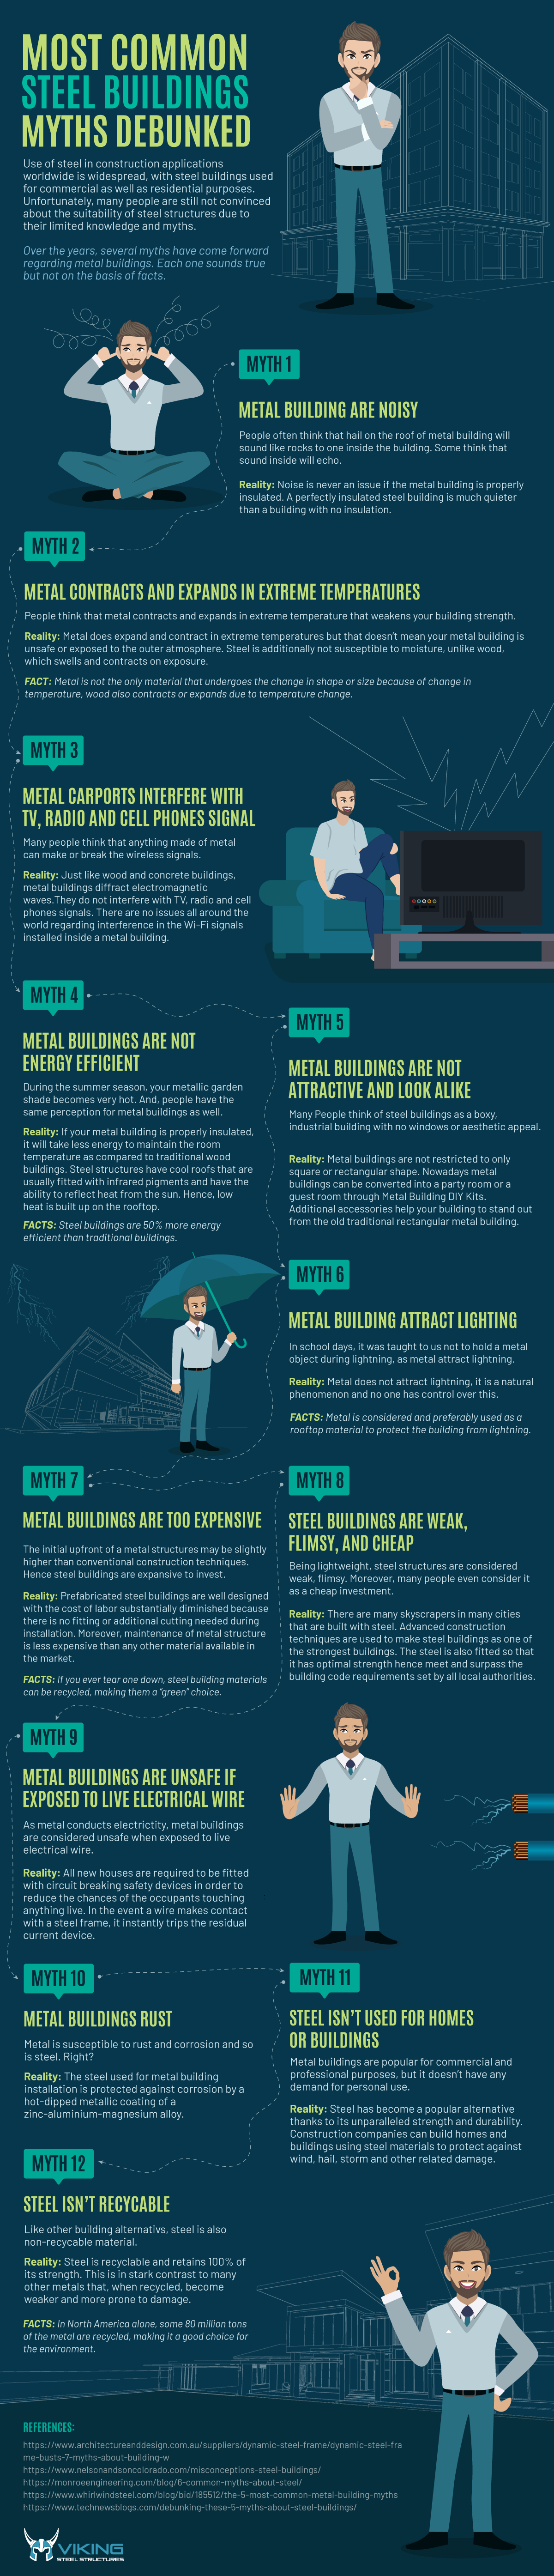 Most Common Steel Buildings Myths Debunked #infographic